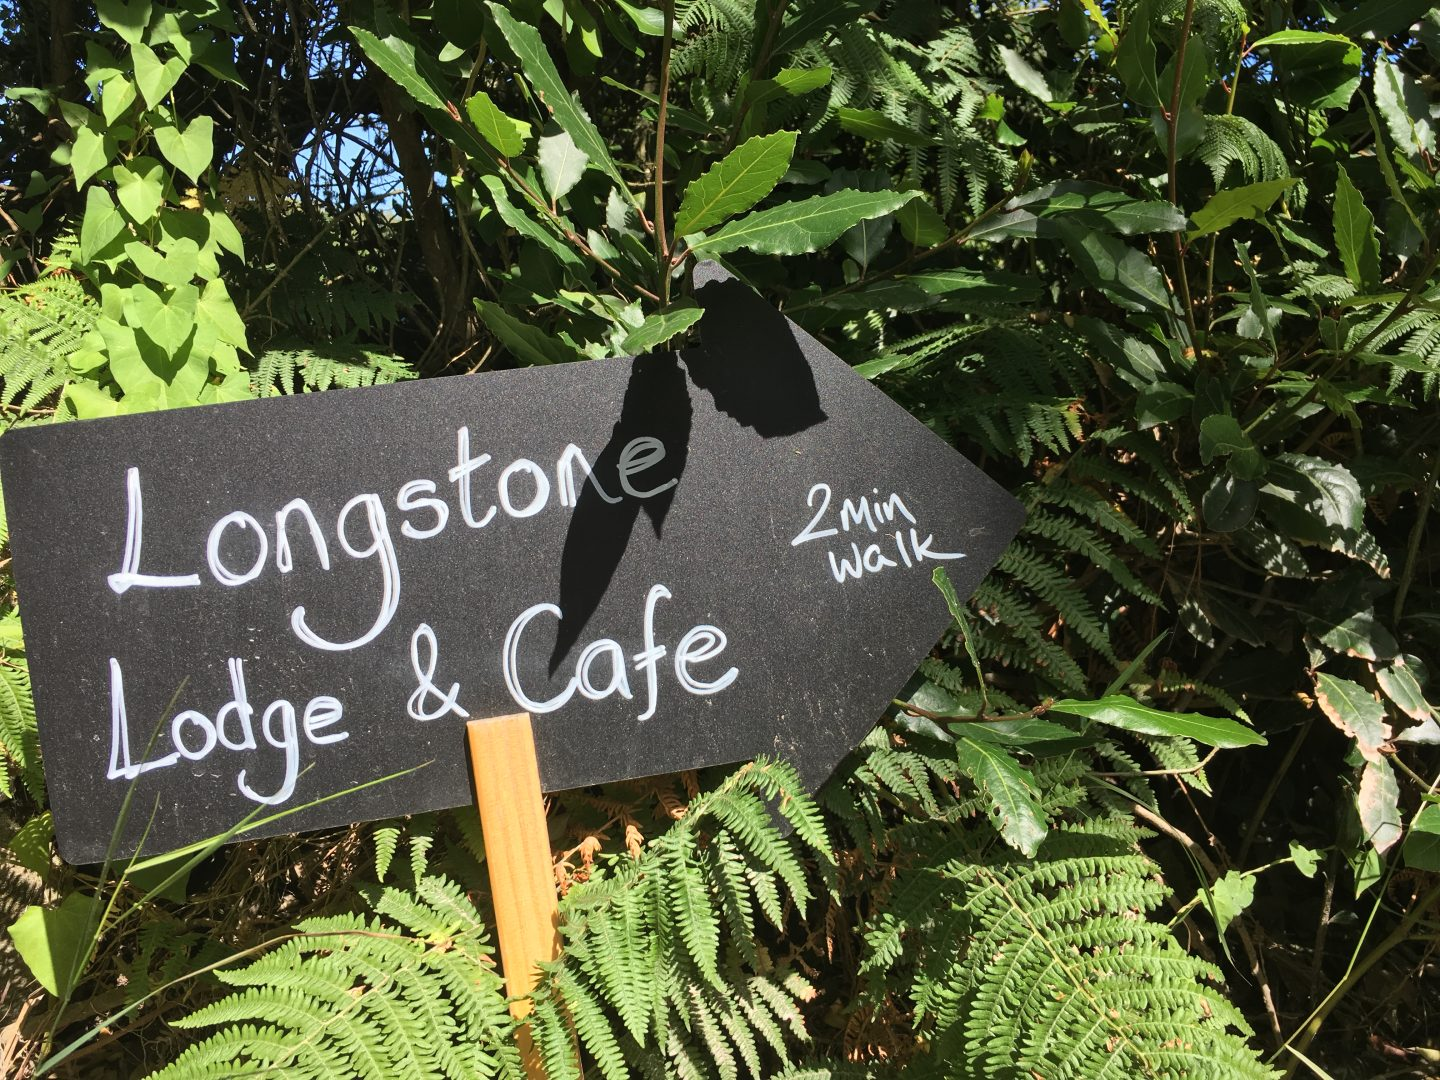 Longstone Lodge sign